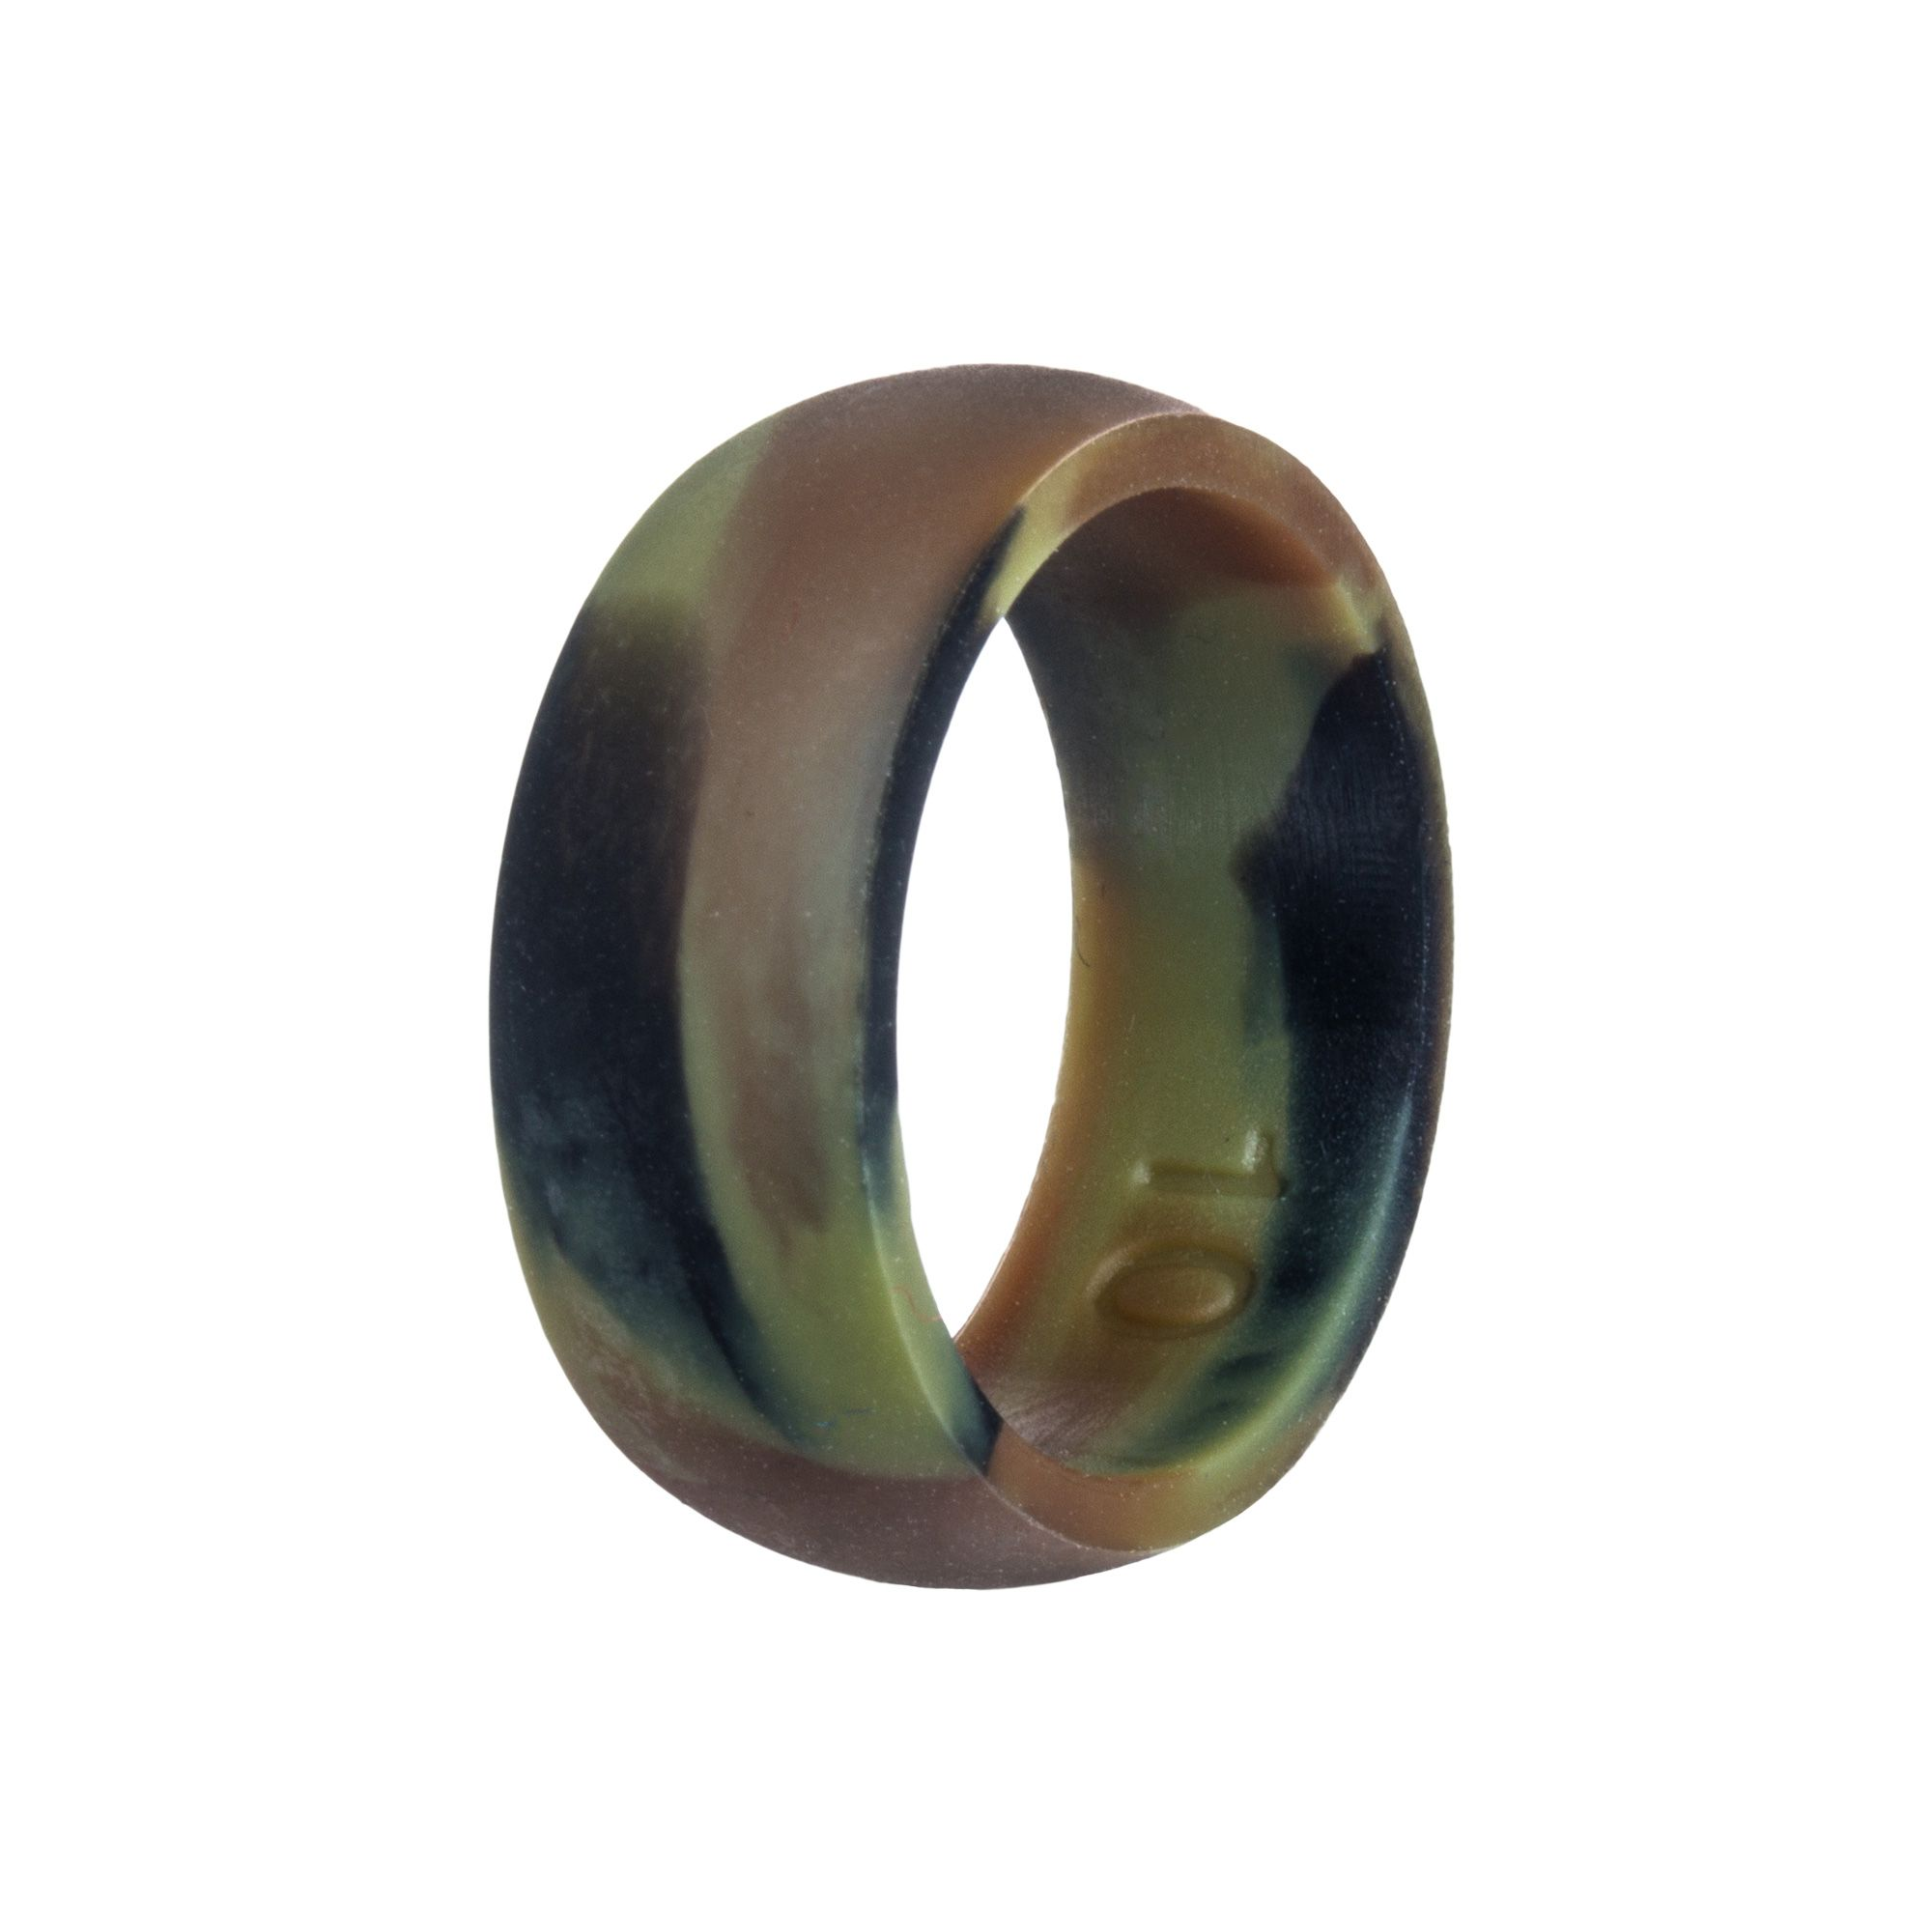 me black rings join movement ring workingperson silicon brown the and camoflauge qalo green